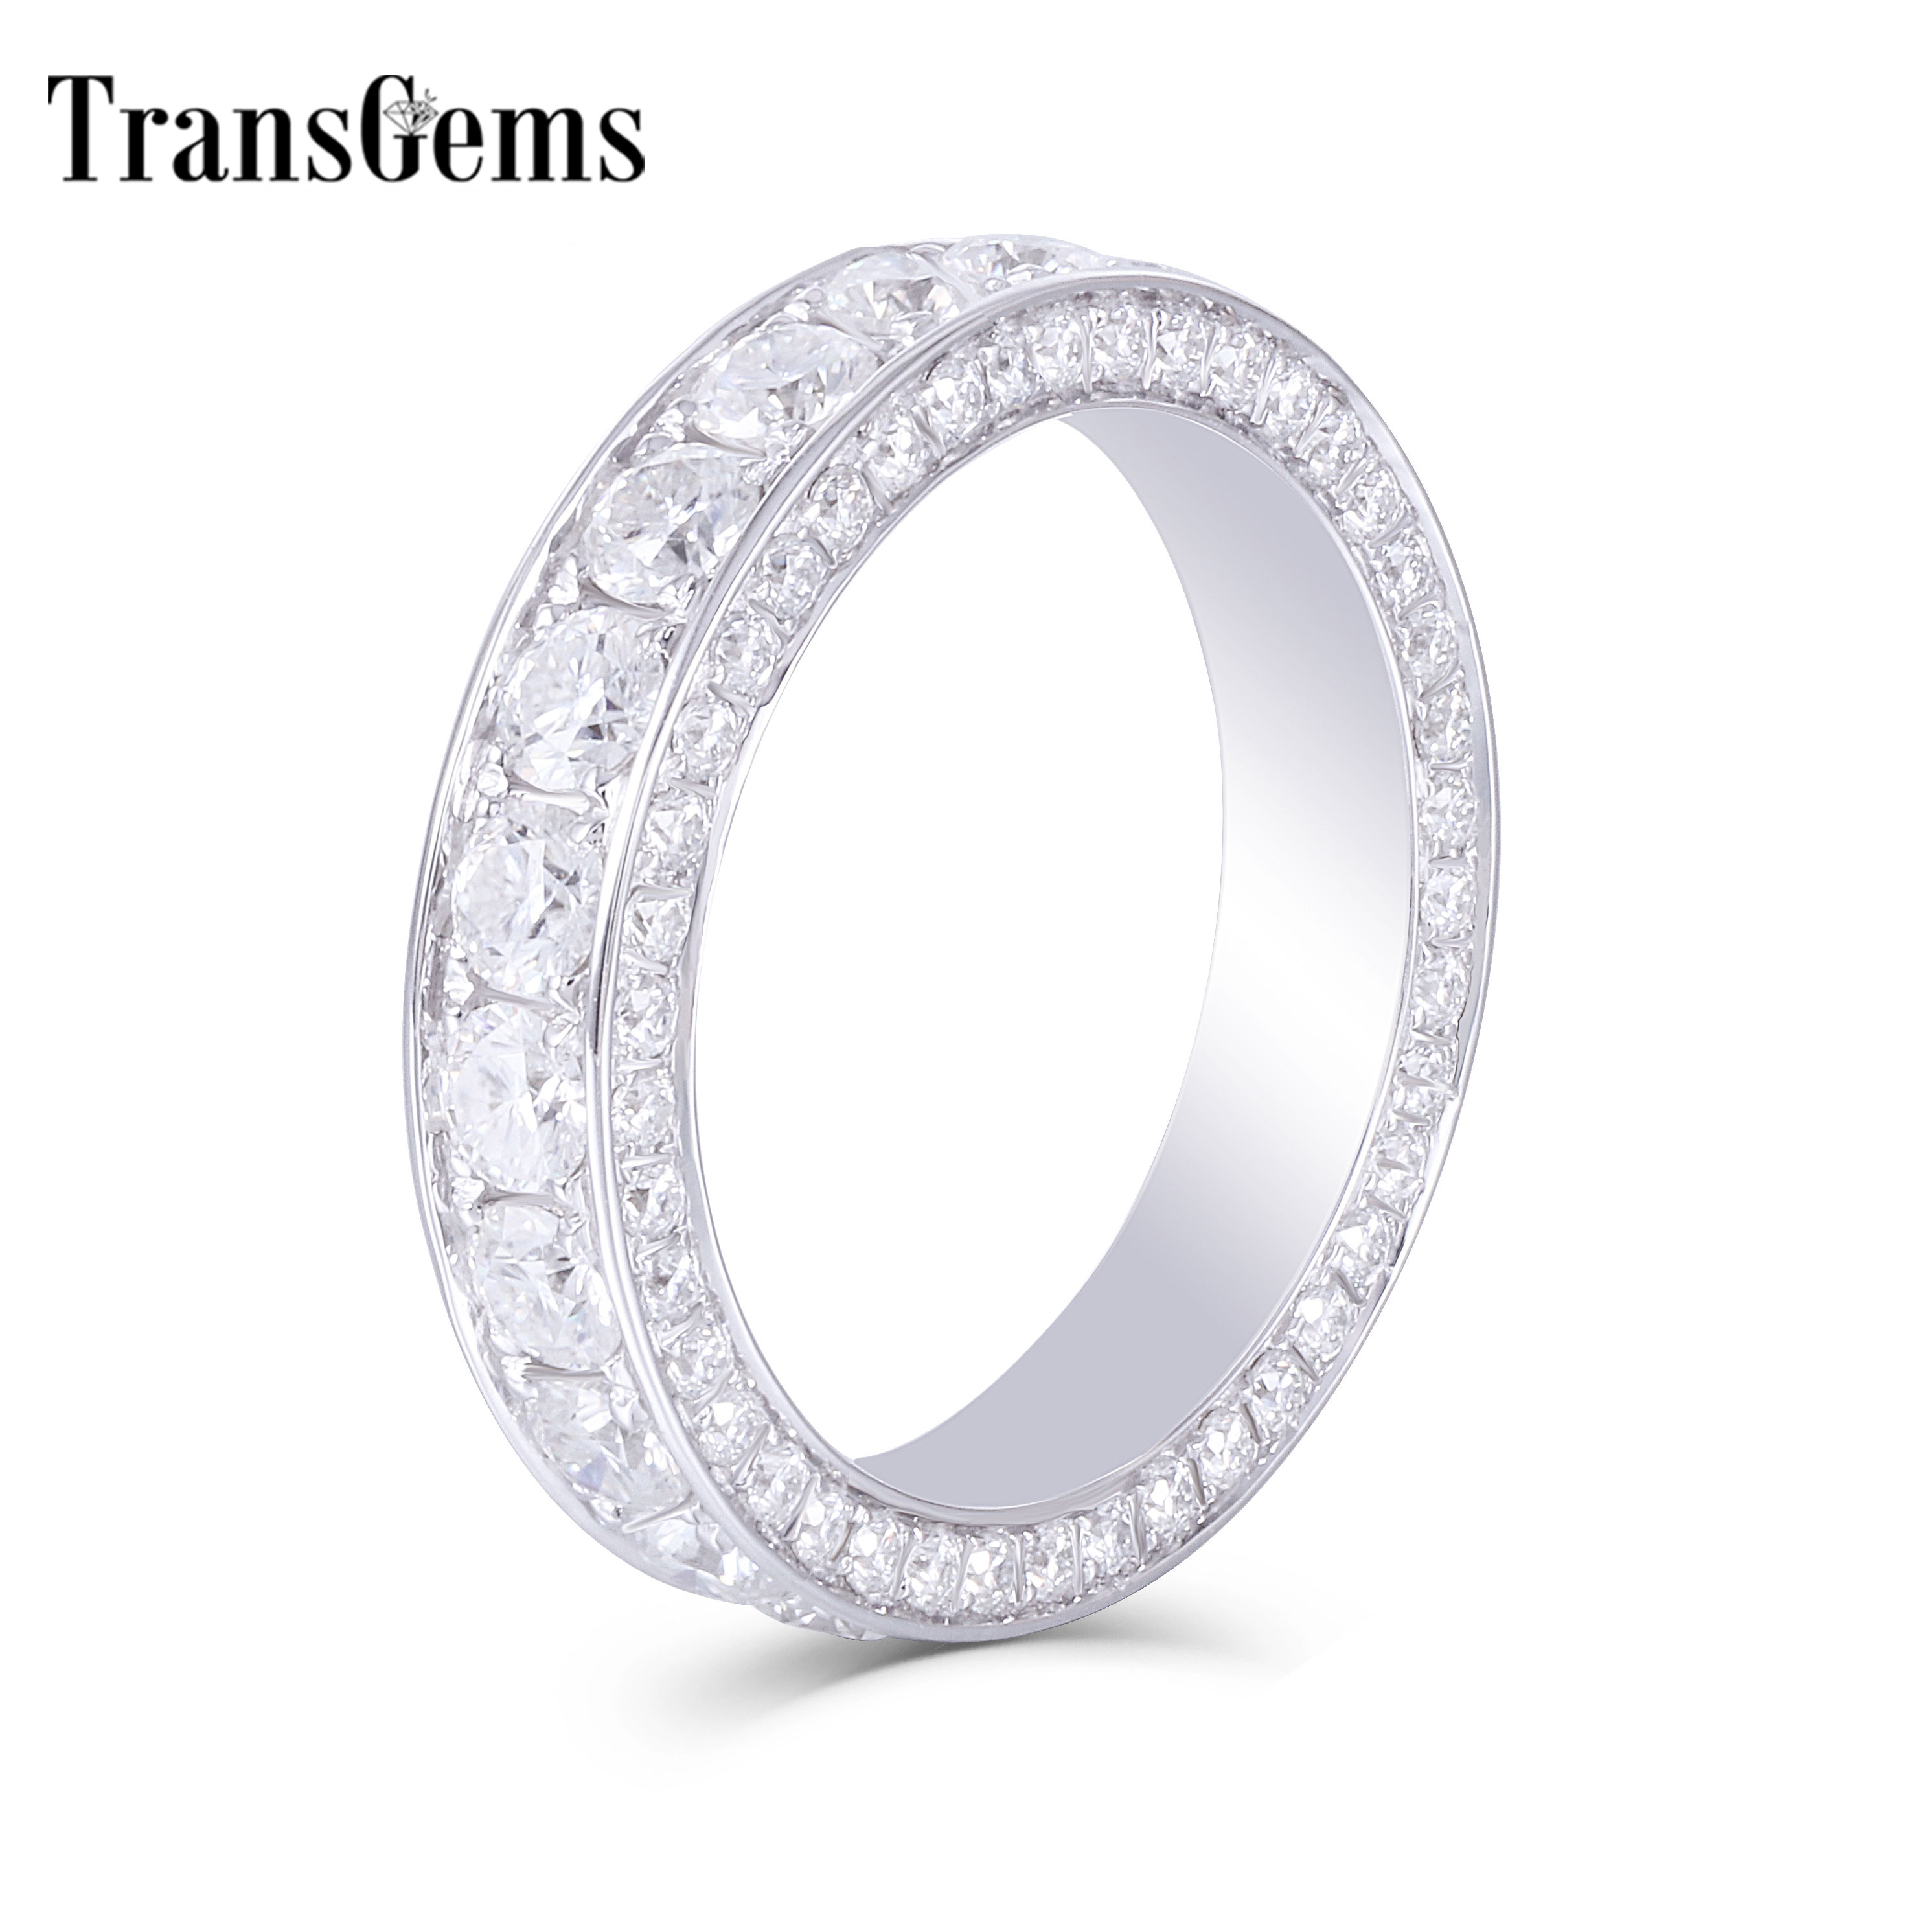 TransGems 3CTW F Colorless Lab Moissanite Wedding Band Set Real Diamond Accents Bridal Rings 14K White Gold for Women